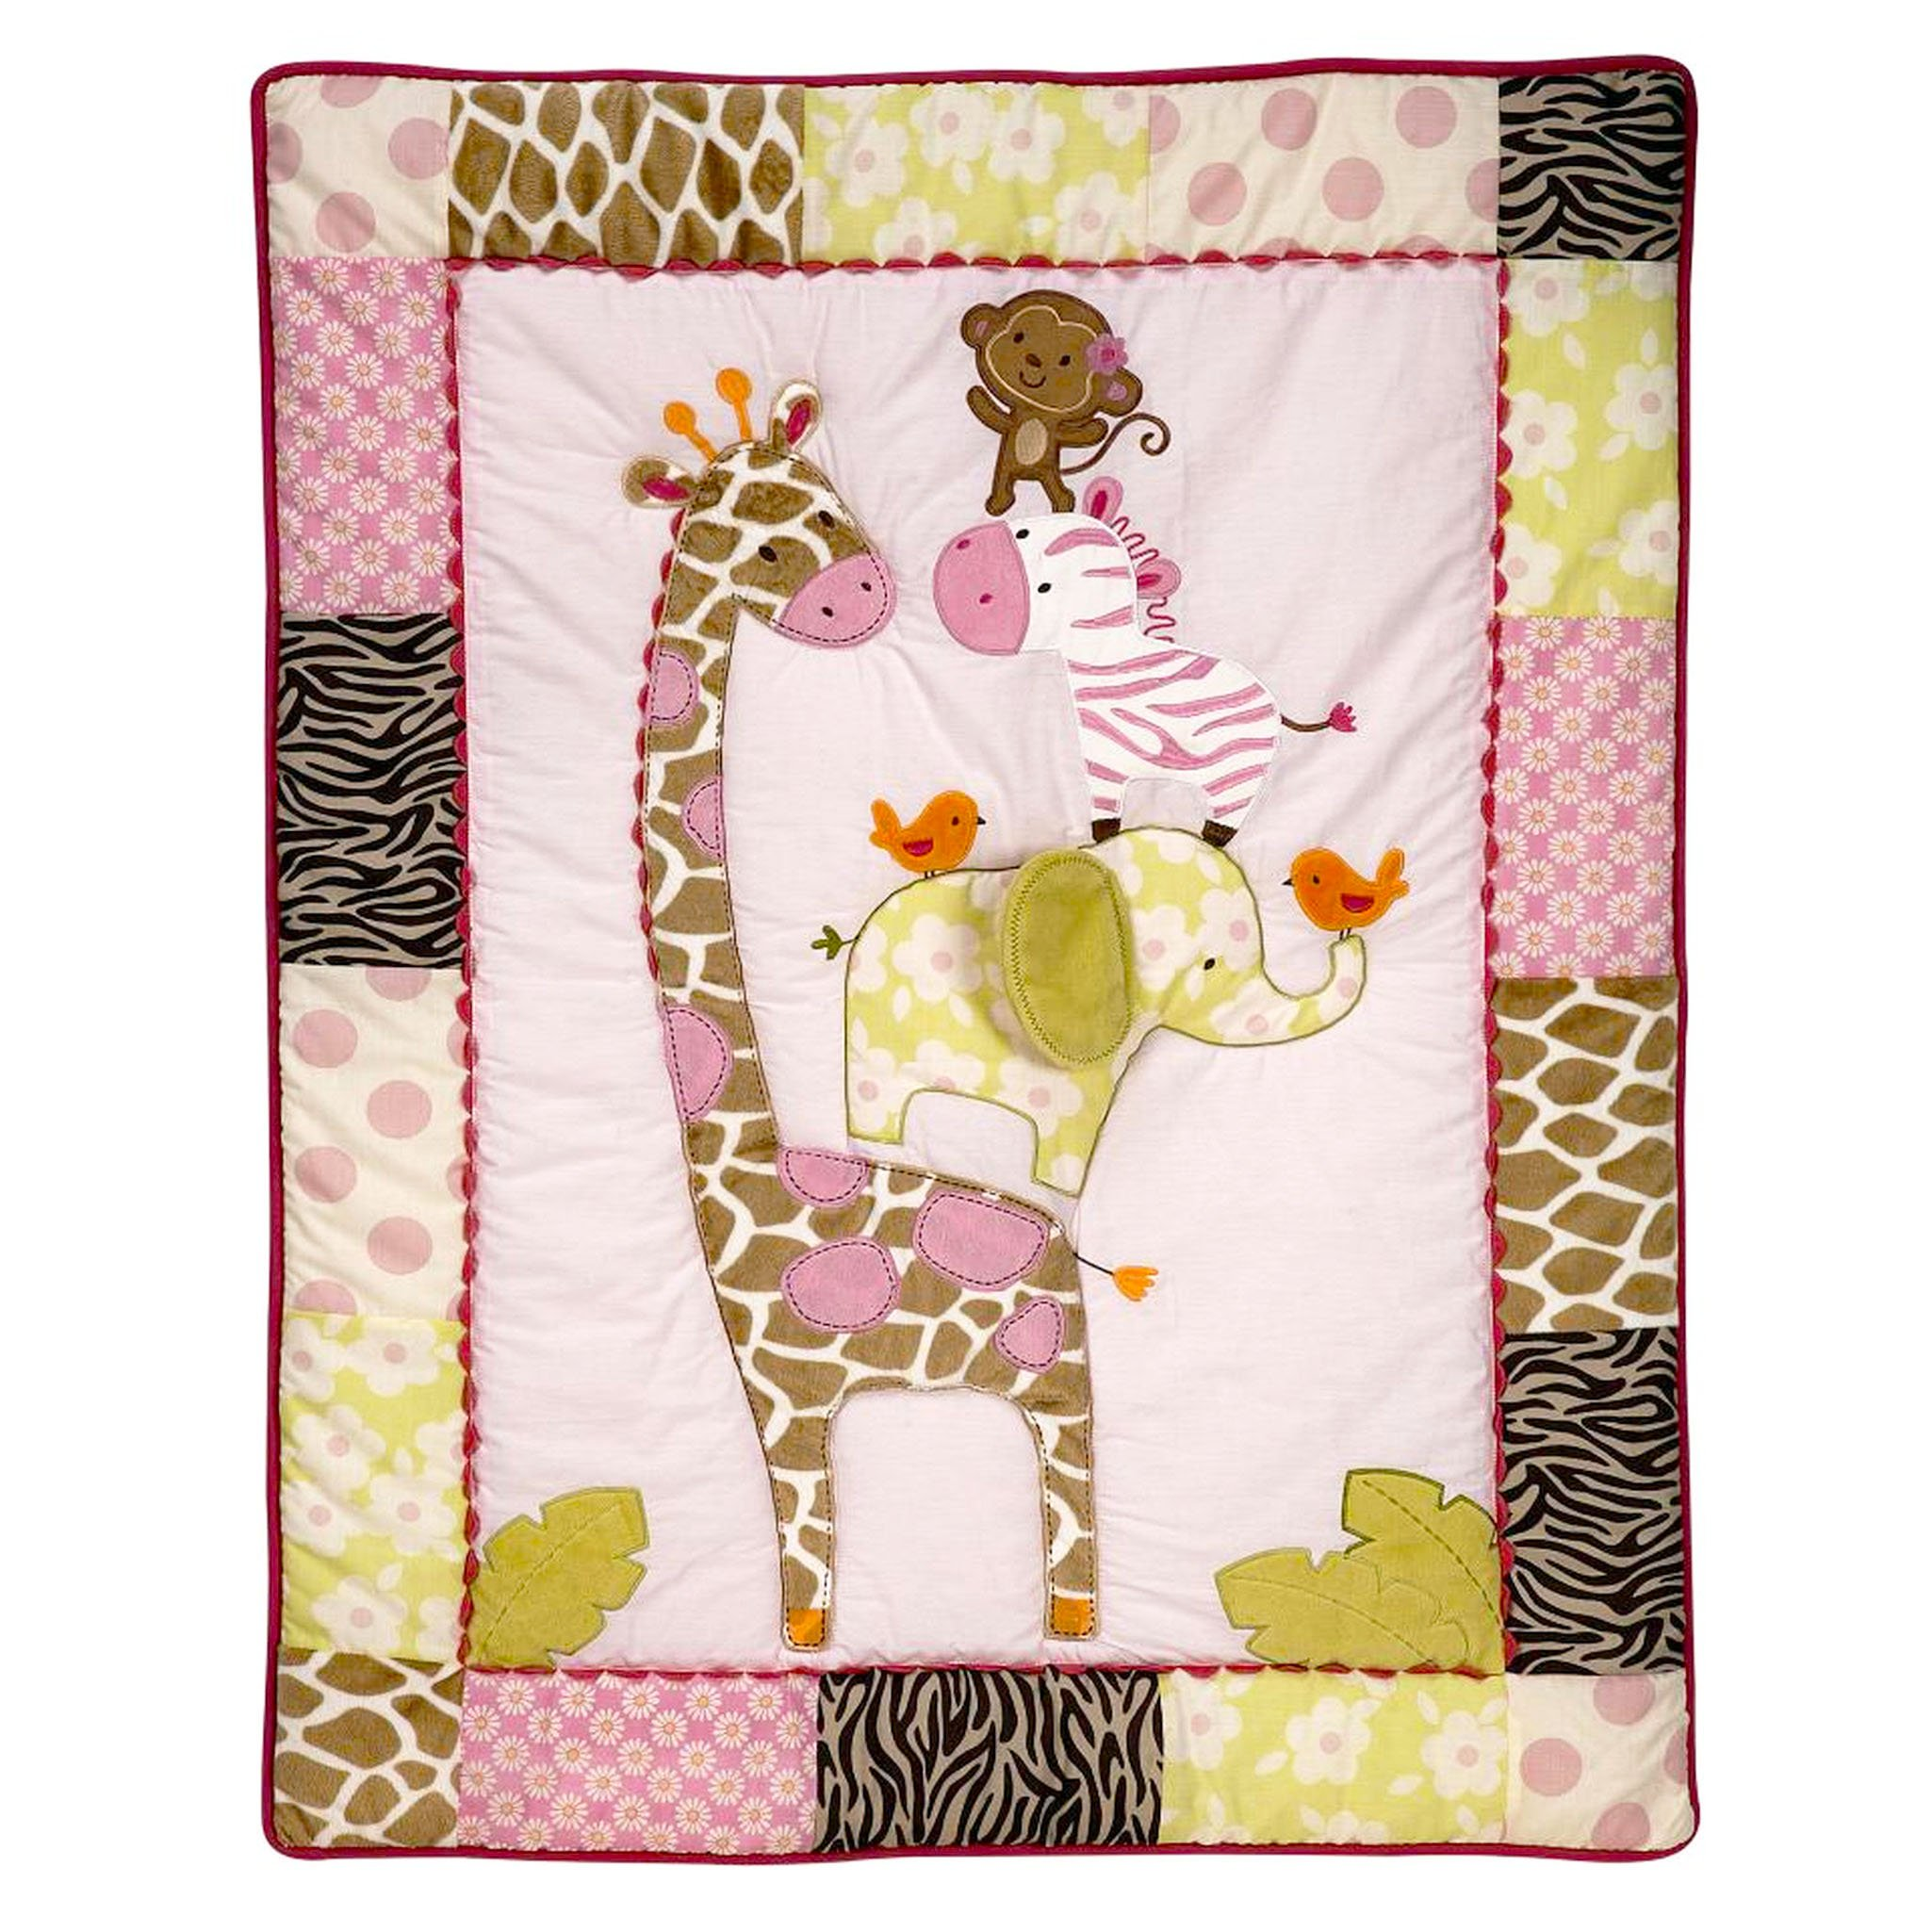 Carter's Jungle Jill Baby Applique Luxury (Crib Quilt/Comforter Only) Pink